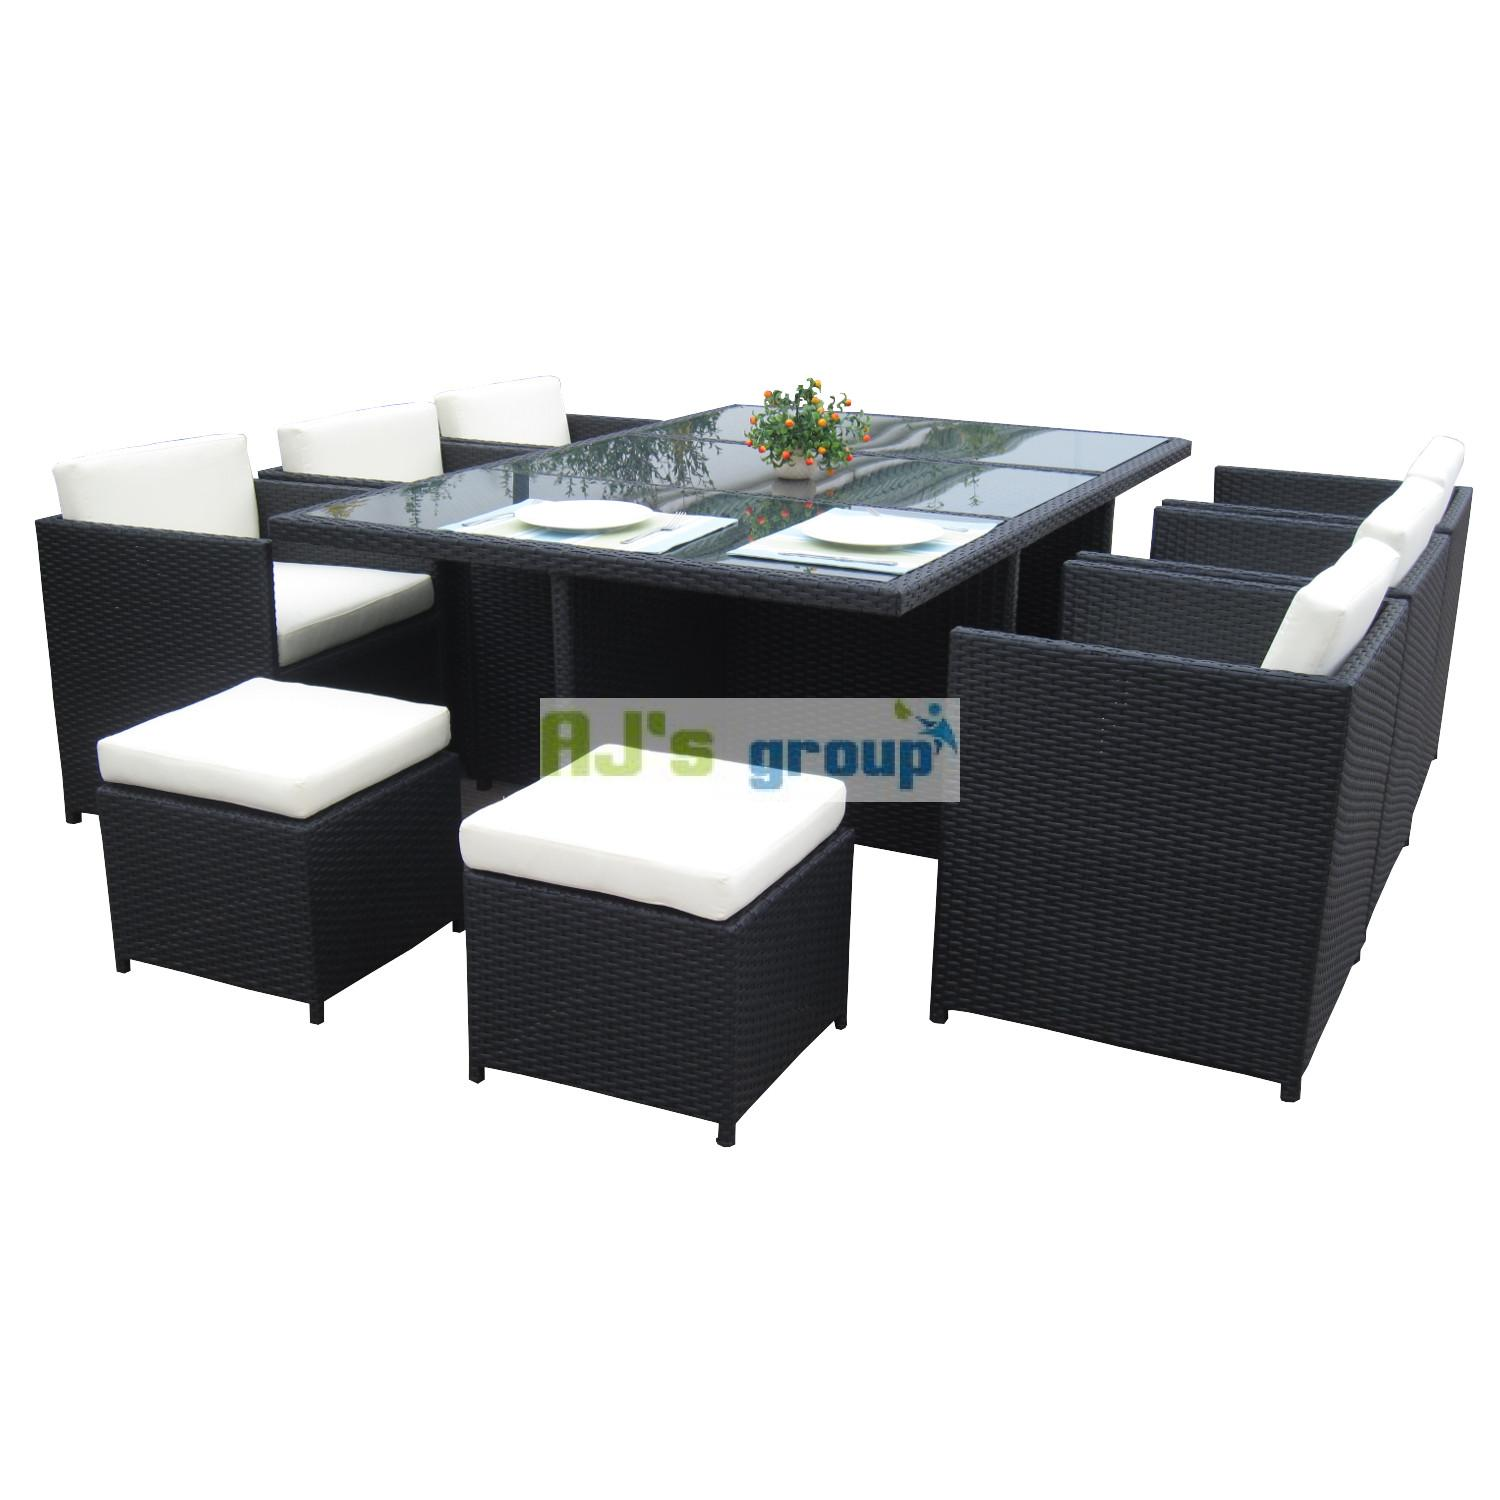 poly rattan essgruppe san diego gartenm bel garnitur lounge garten sitzgruppe ebay. Black Bedroom Furniture Sets. Home Design Ideas